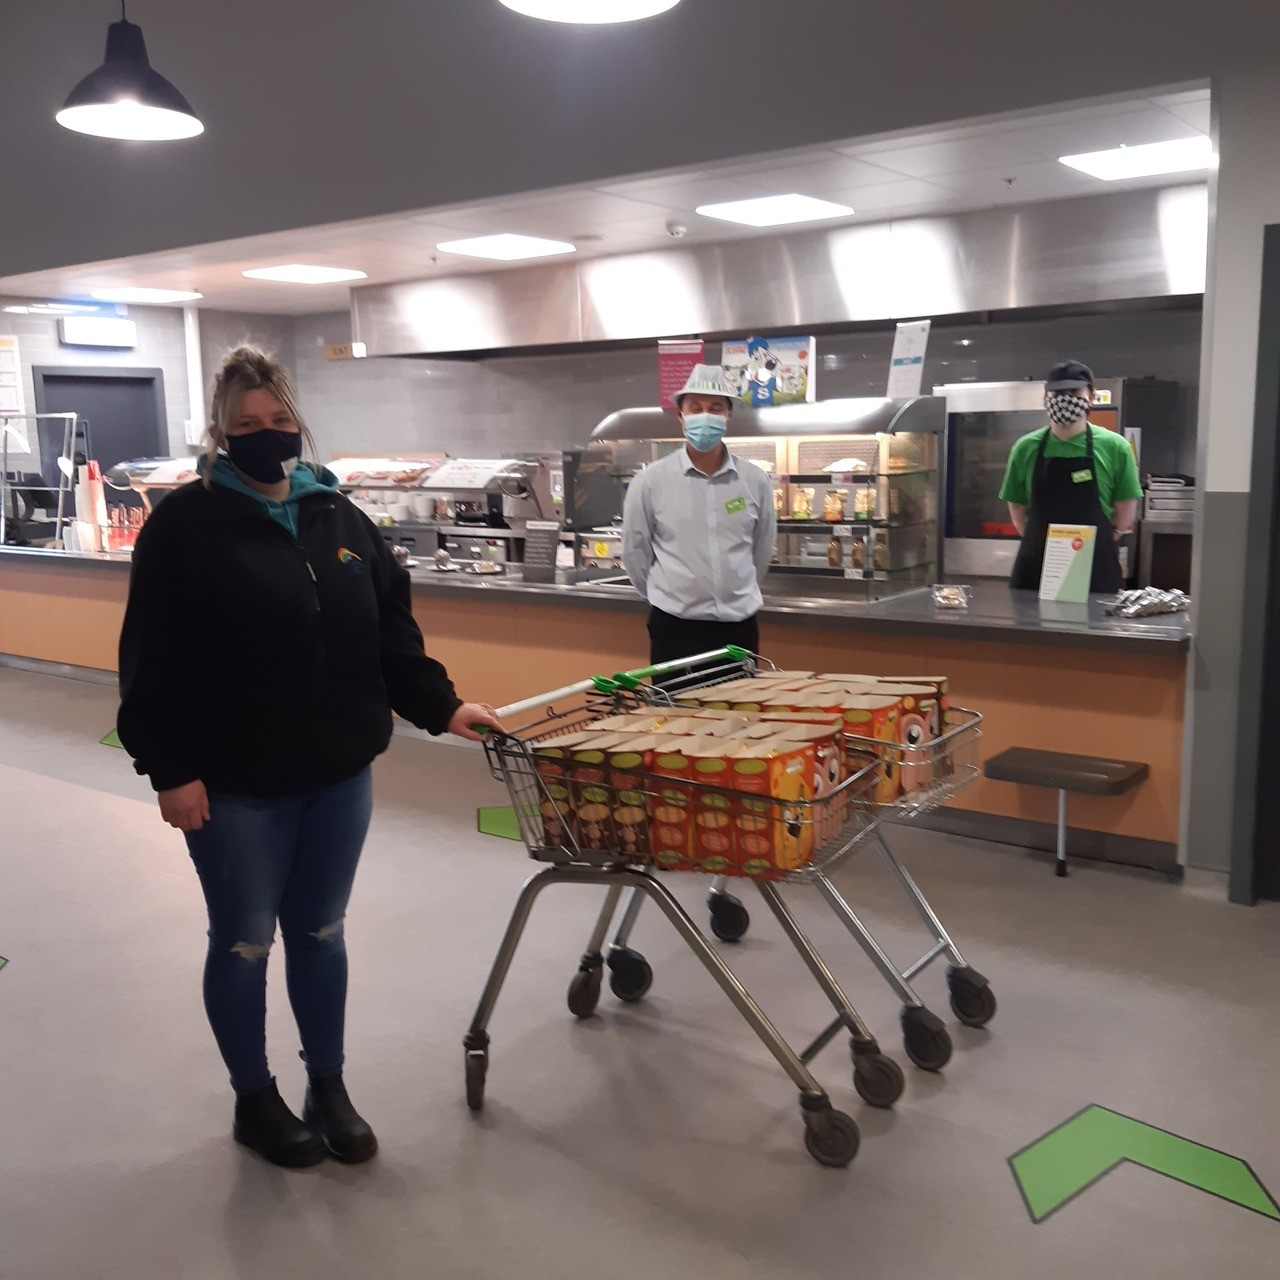 Asda Kitchen and Leslie Community Pantry | Asda Glenrothes